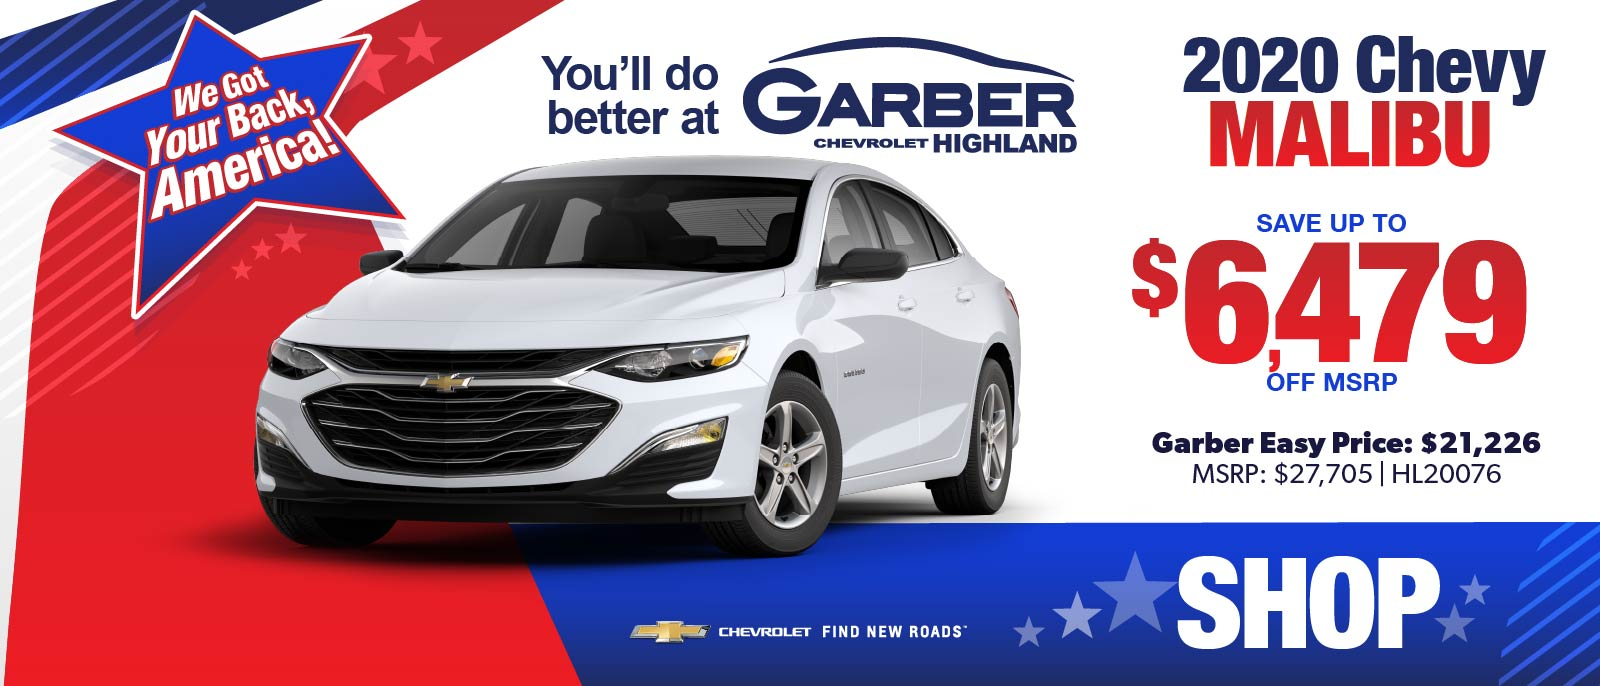 2020 Chevy Malibu - SAVE up to $6479 off MSRP | Garber Easy Price: $21,226 | MSRP $27,705 #HL20076